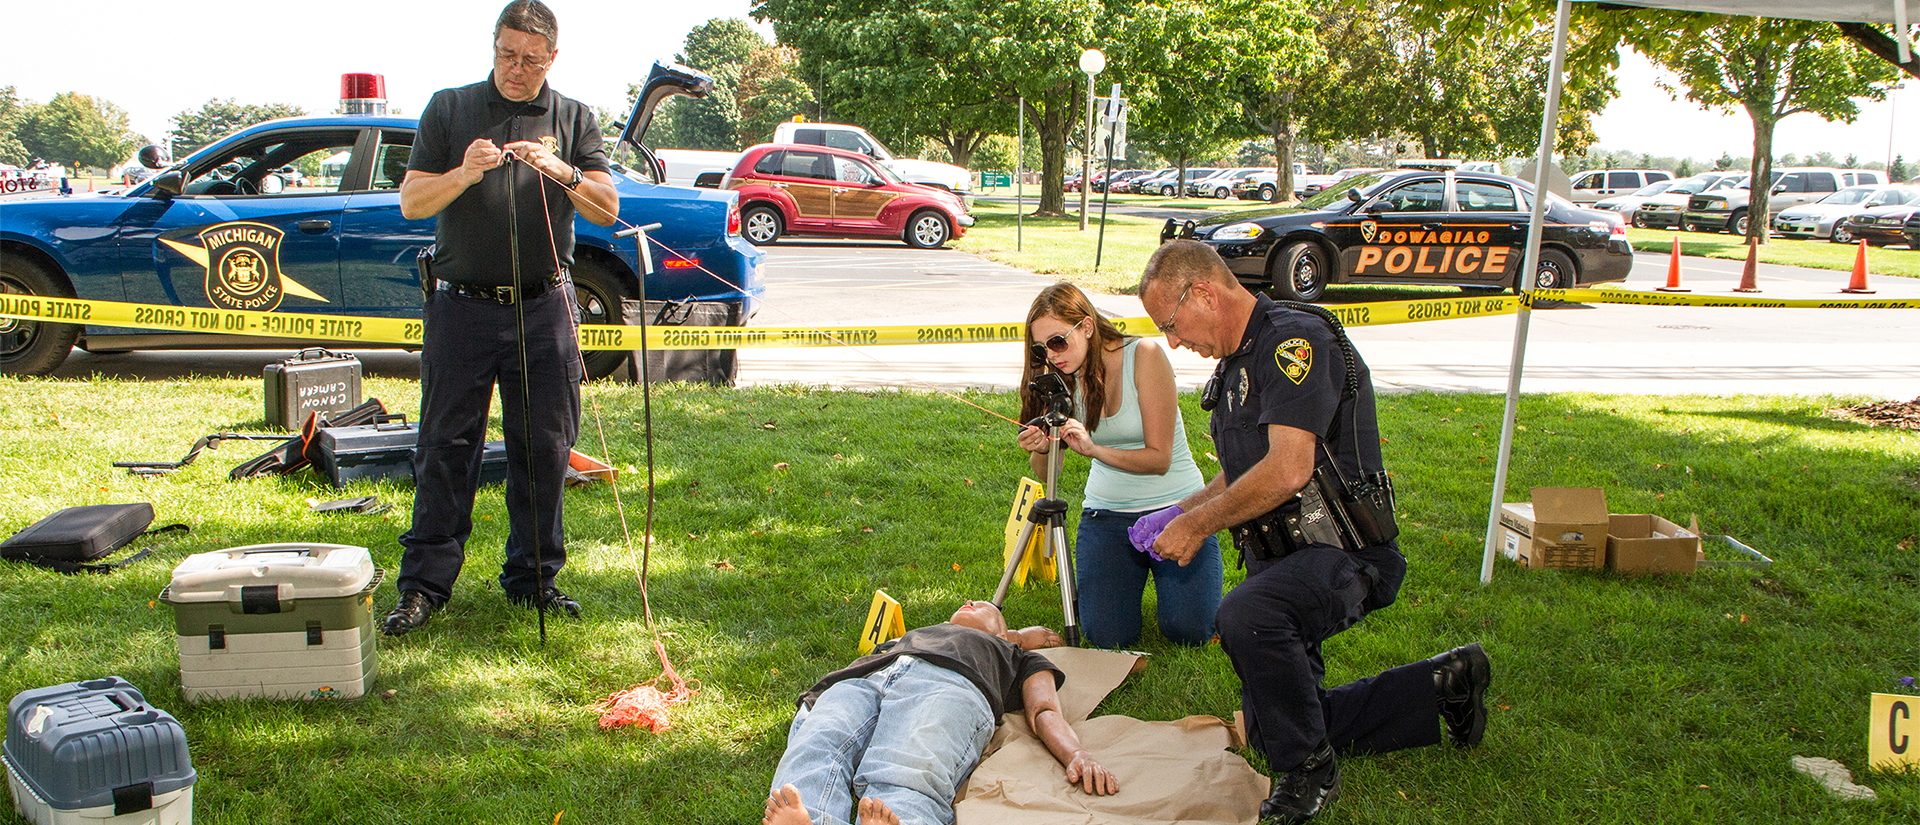 Criminal justice student learning crime scene investigation from state police